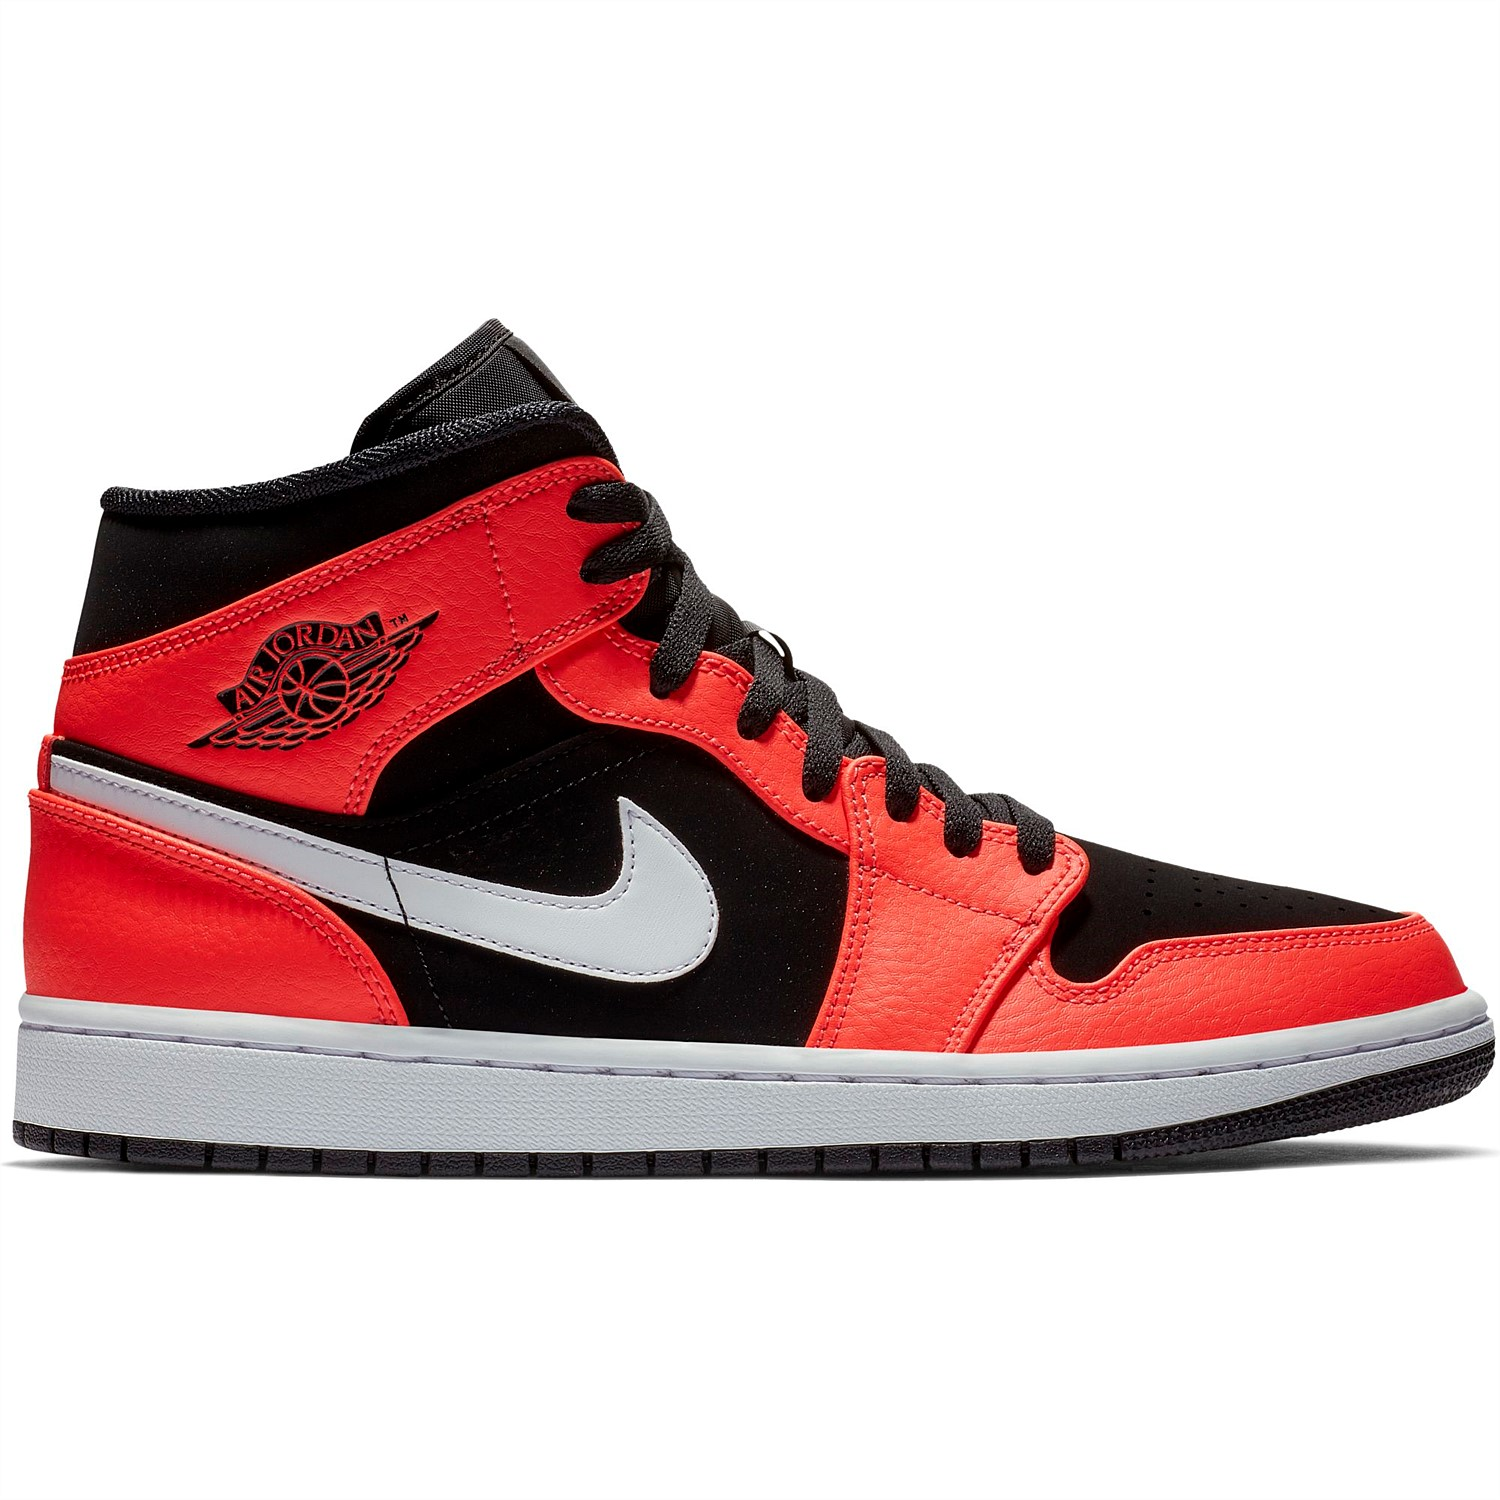 reputable site da146 ec807 Air Jordan 1 Mid Mens